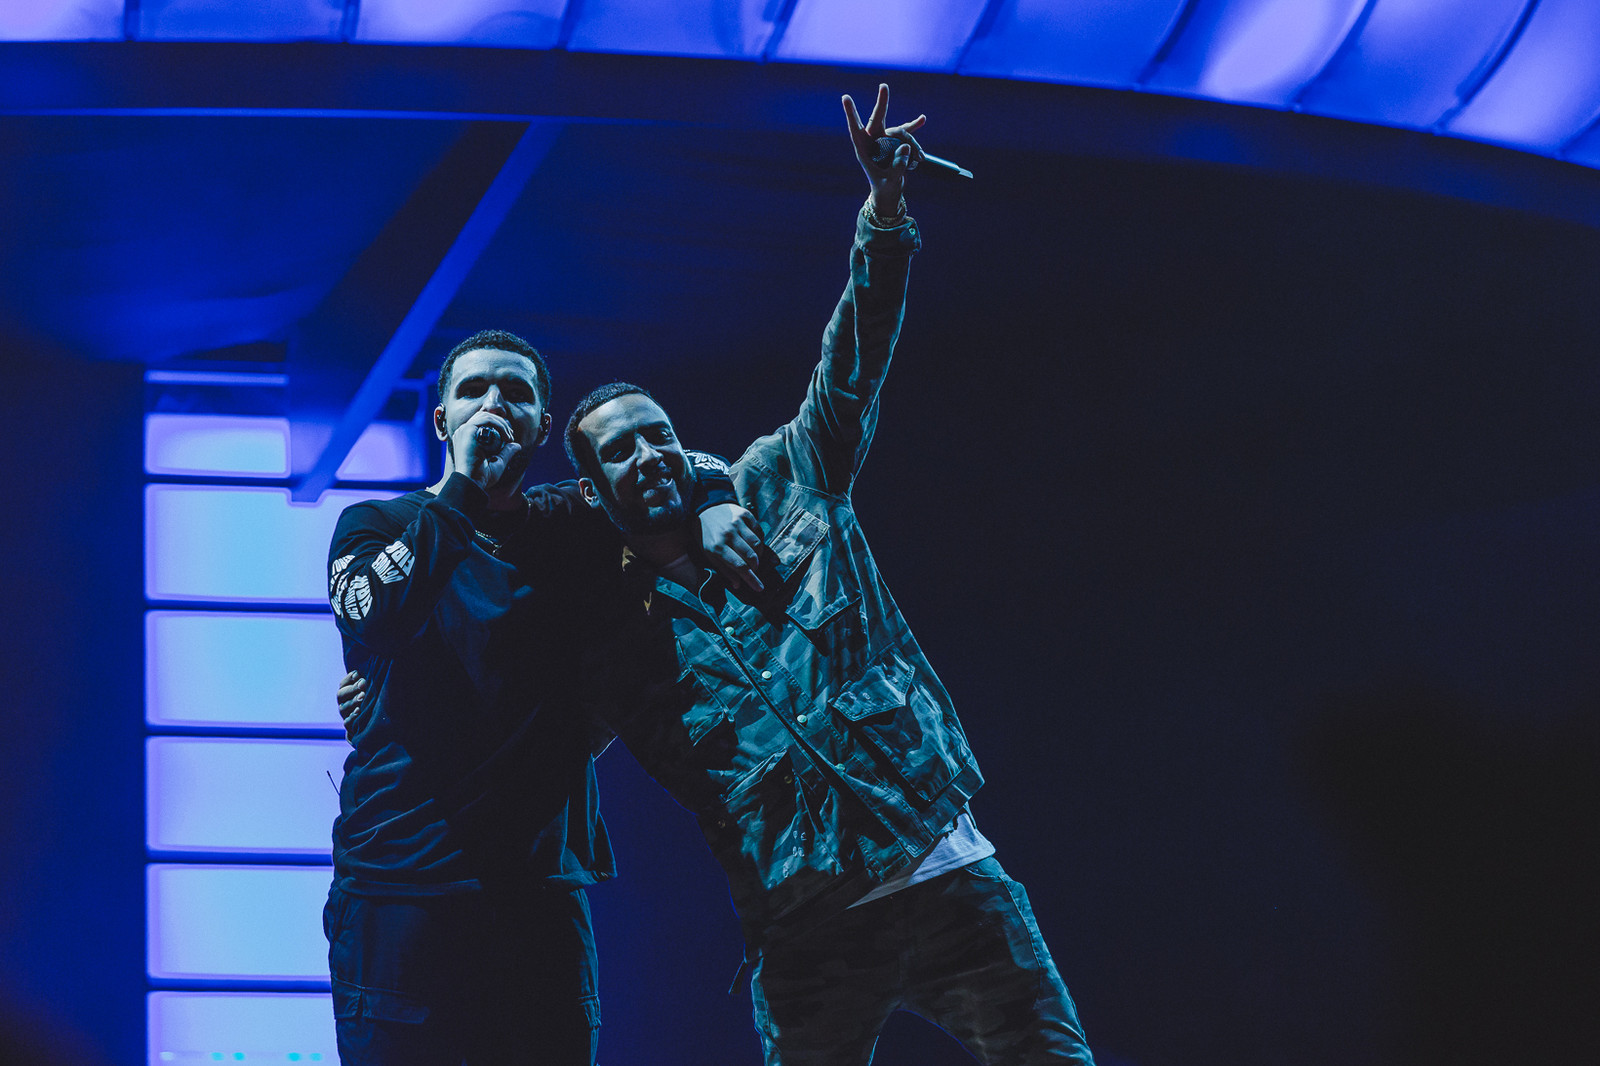 OVO Fest 2017 Review Drake Toronto Nelly Travis Scott the weeknd majid jordan playboi carti French Montana cardi b octobers very own concert festival stage performance hip hop rap music canada Budweiser Stage PARTYNEXTDOOR dvsn roy woods CN Tower Rae Sremmurd migos quavo Baka Not Nice Tory Lanez pictures images